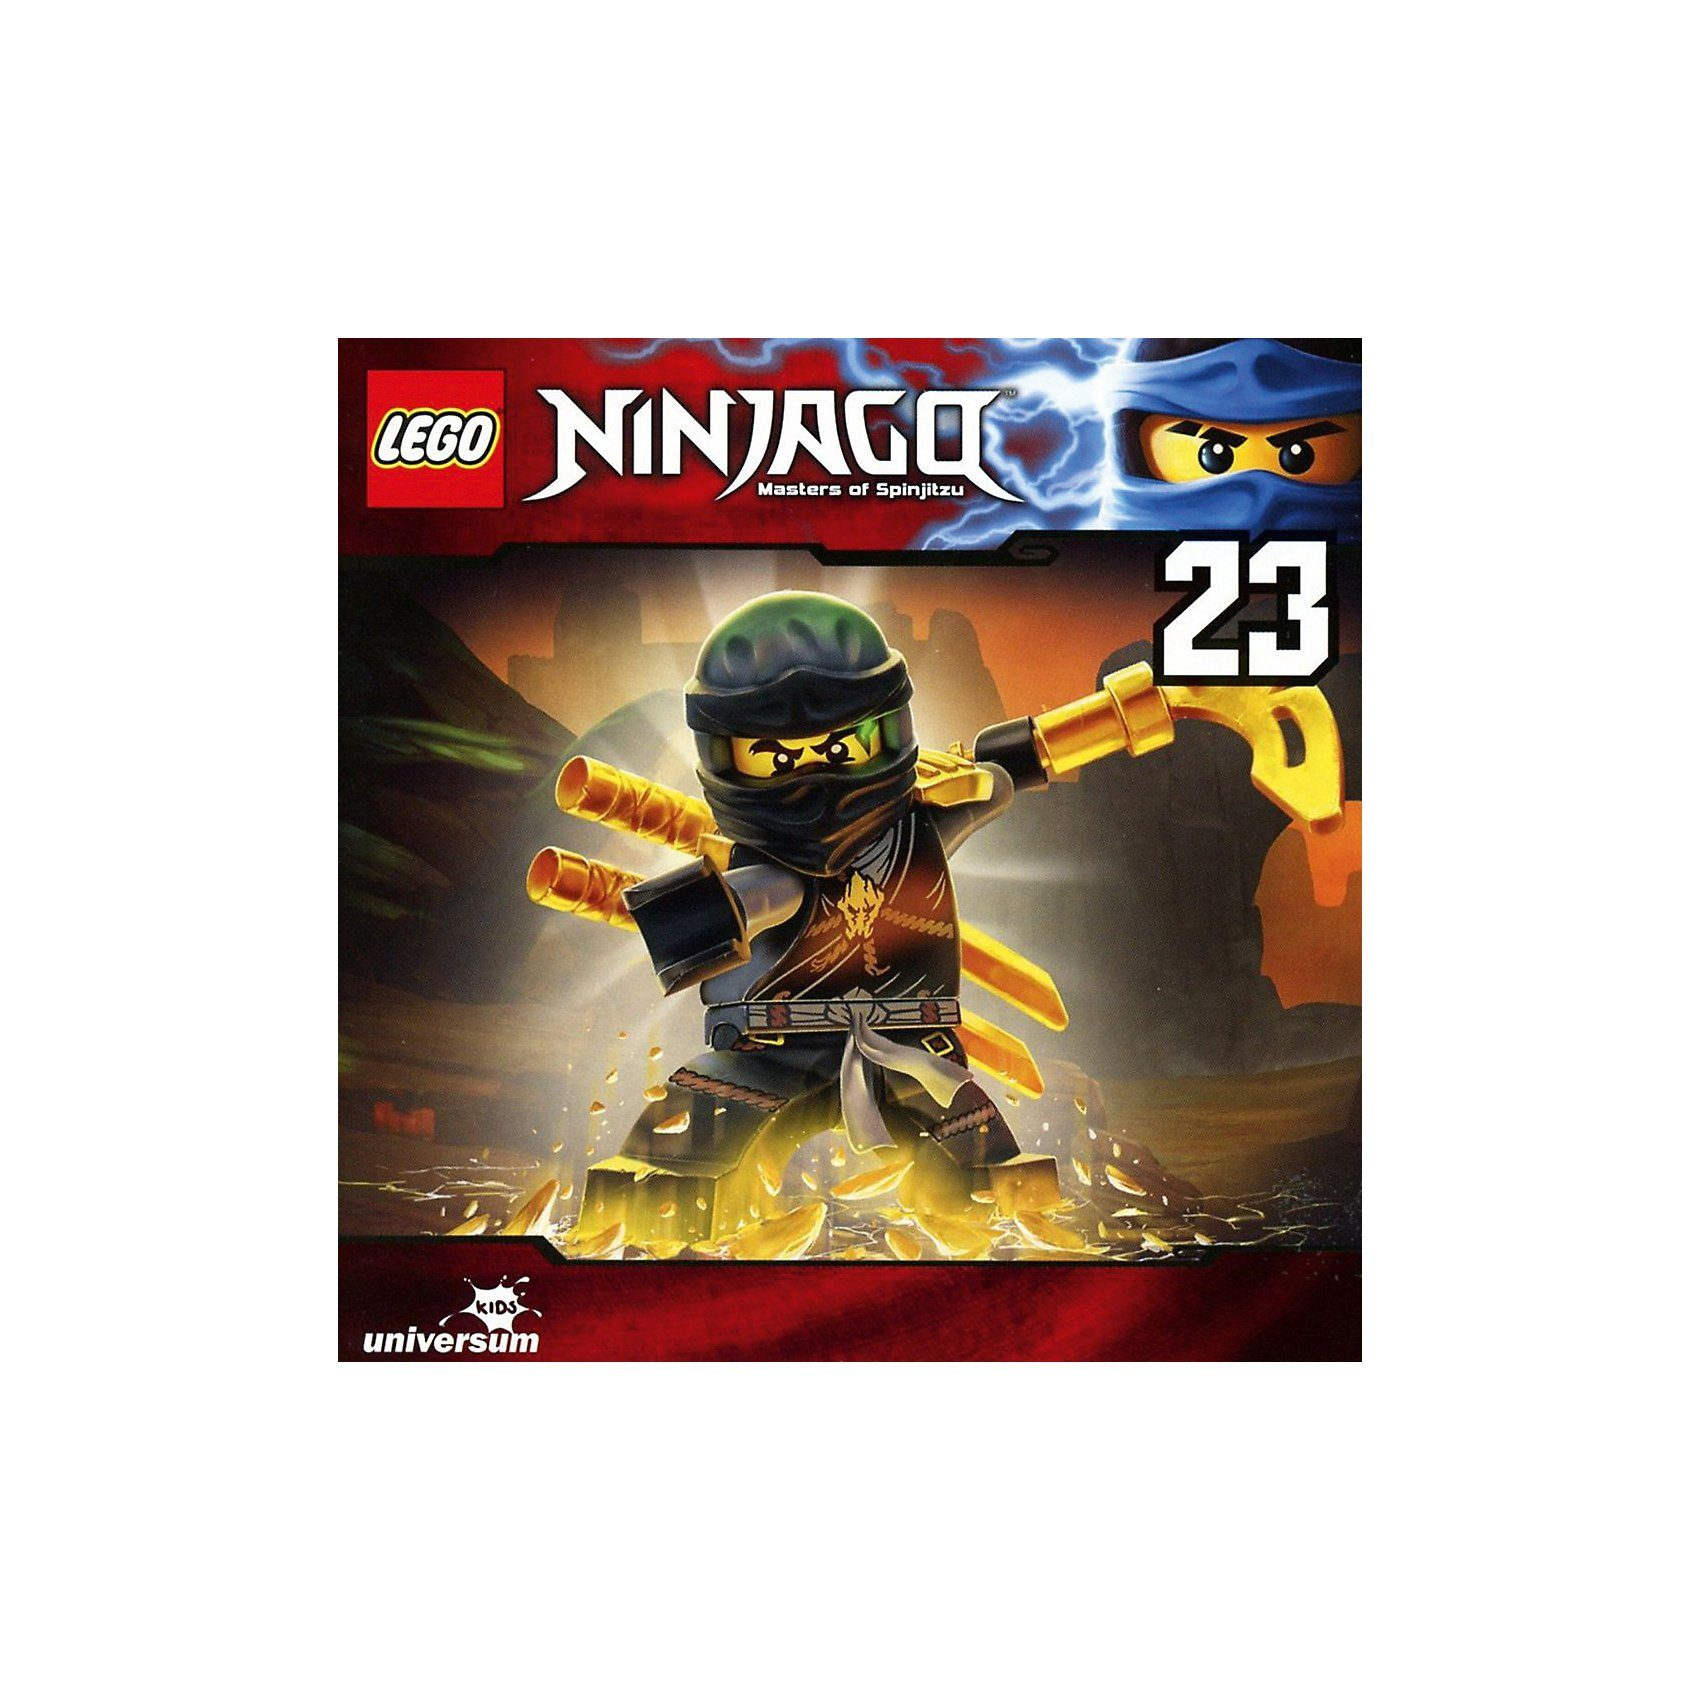 LEGO CD Ninjago - Masters of Spinjitzu 23